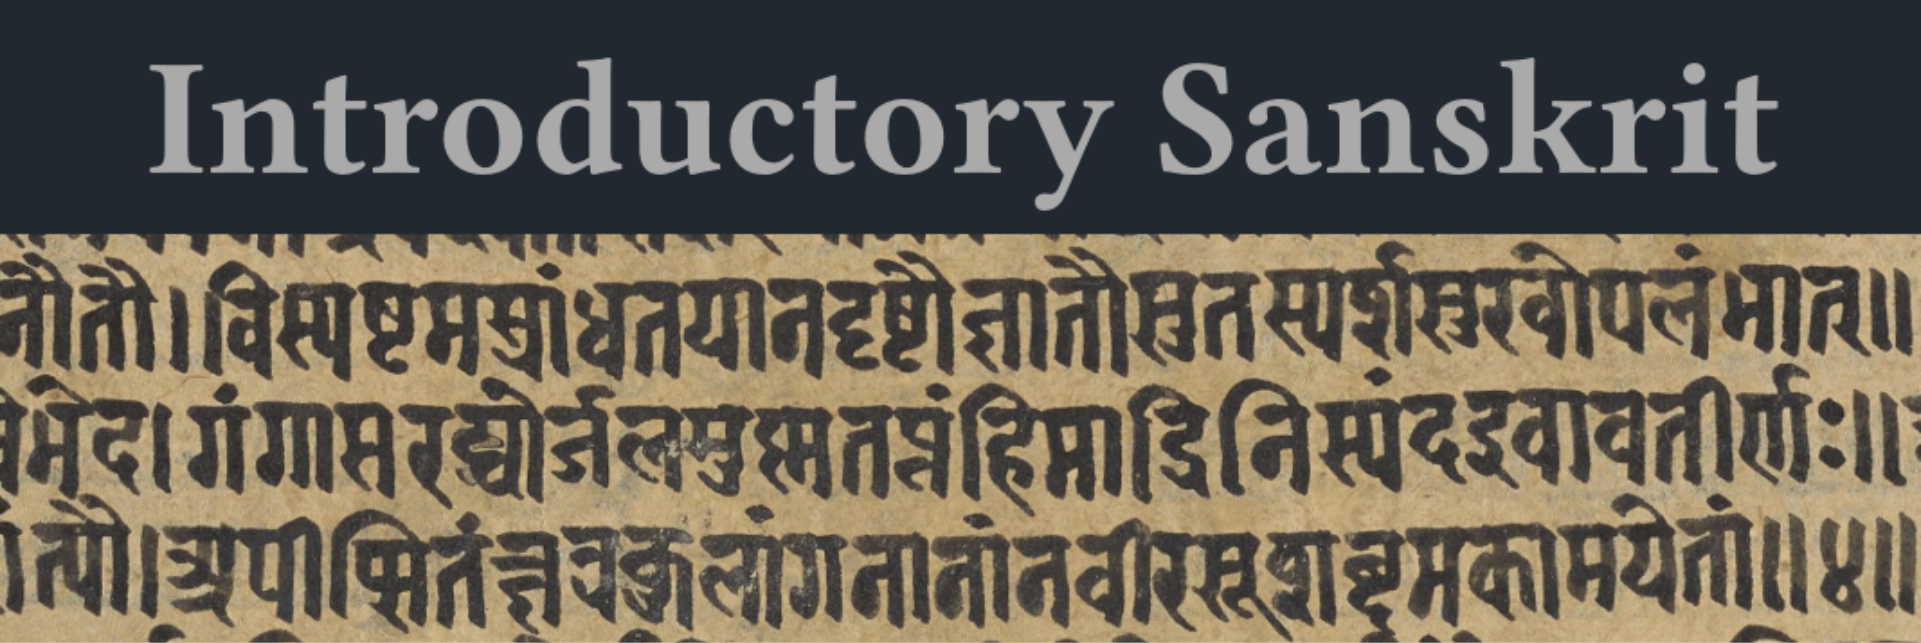 Introductory Sanskrit